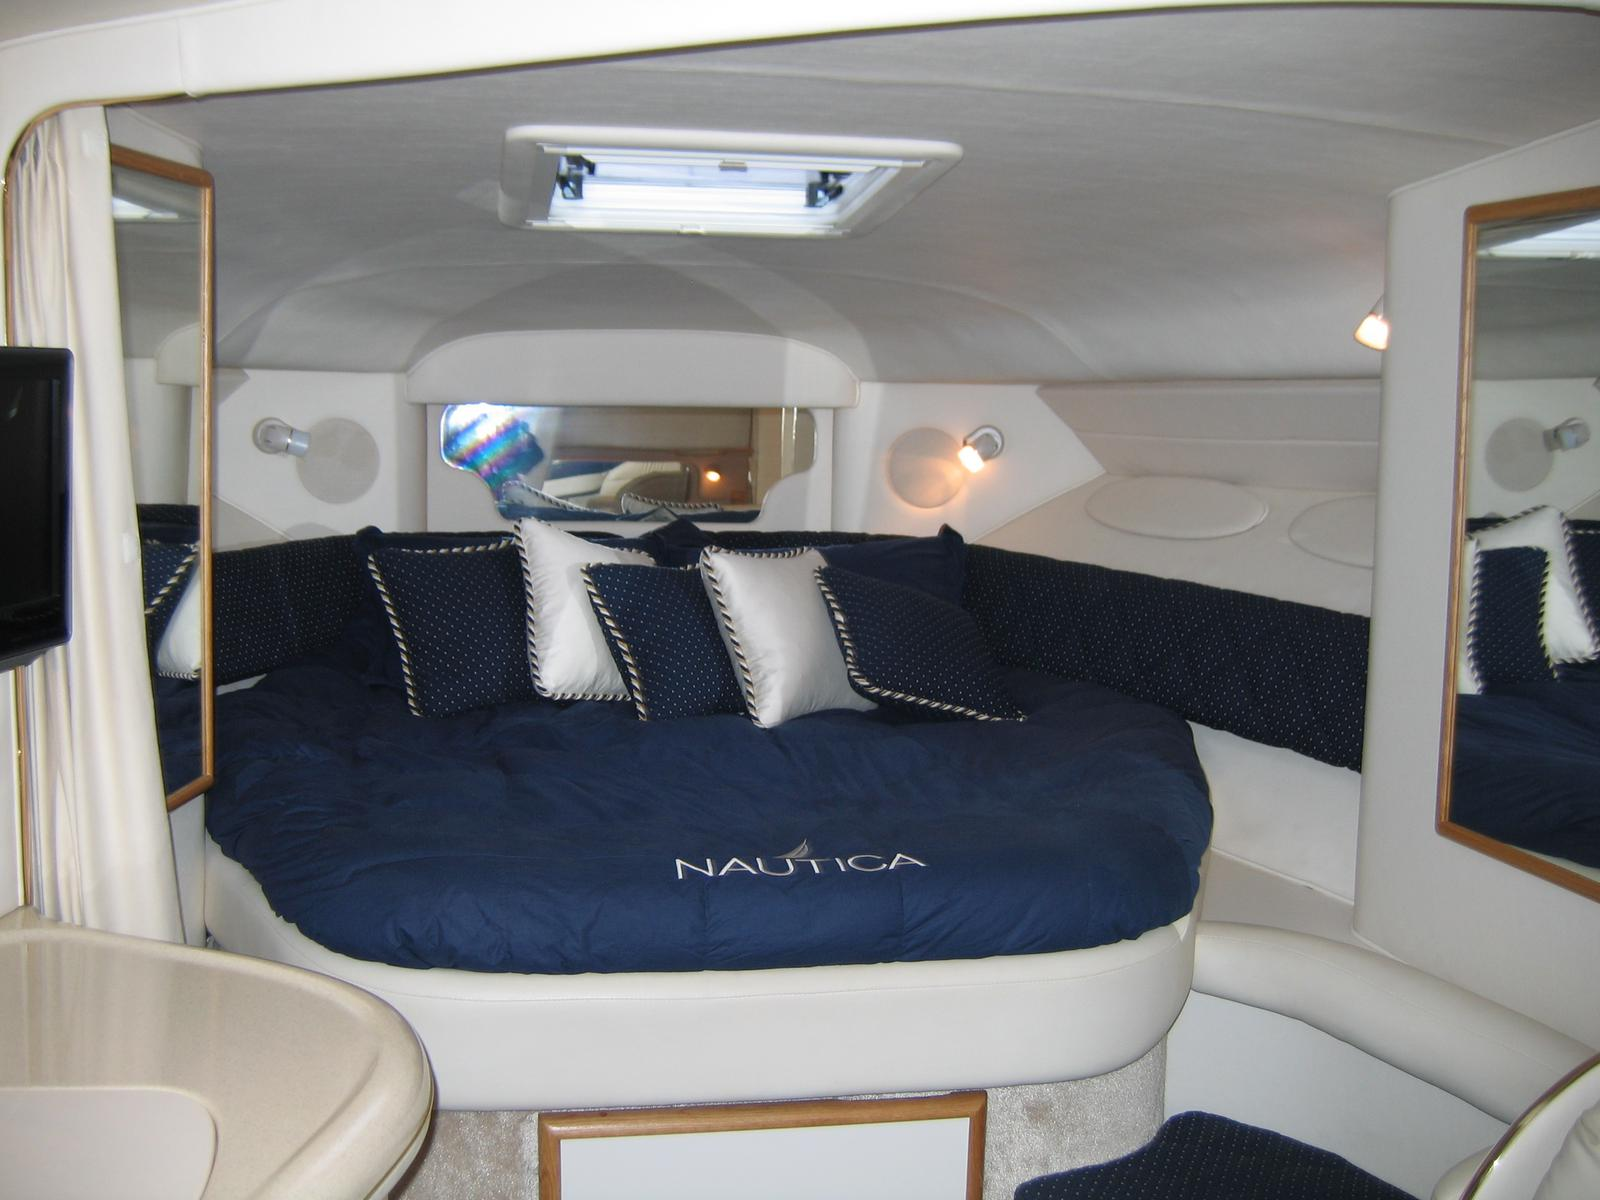 2000 Sea Ray boat for sale, model of the boat is 340 Sundancer & Image # 10 of 11